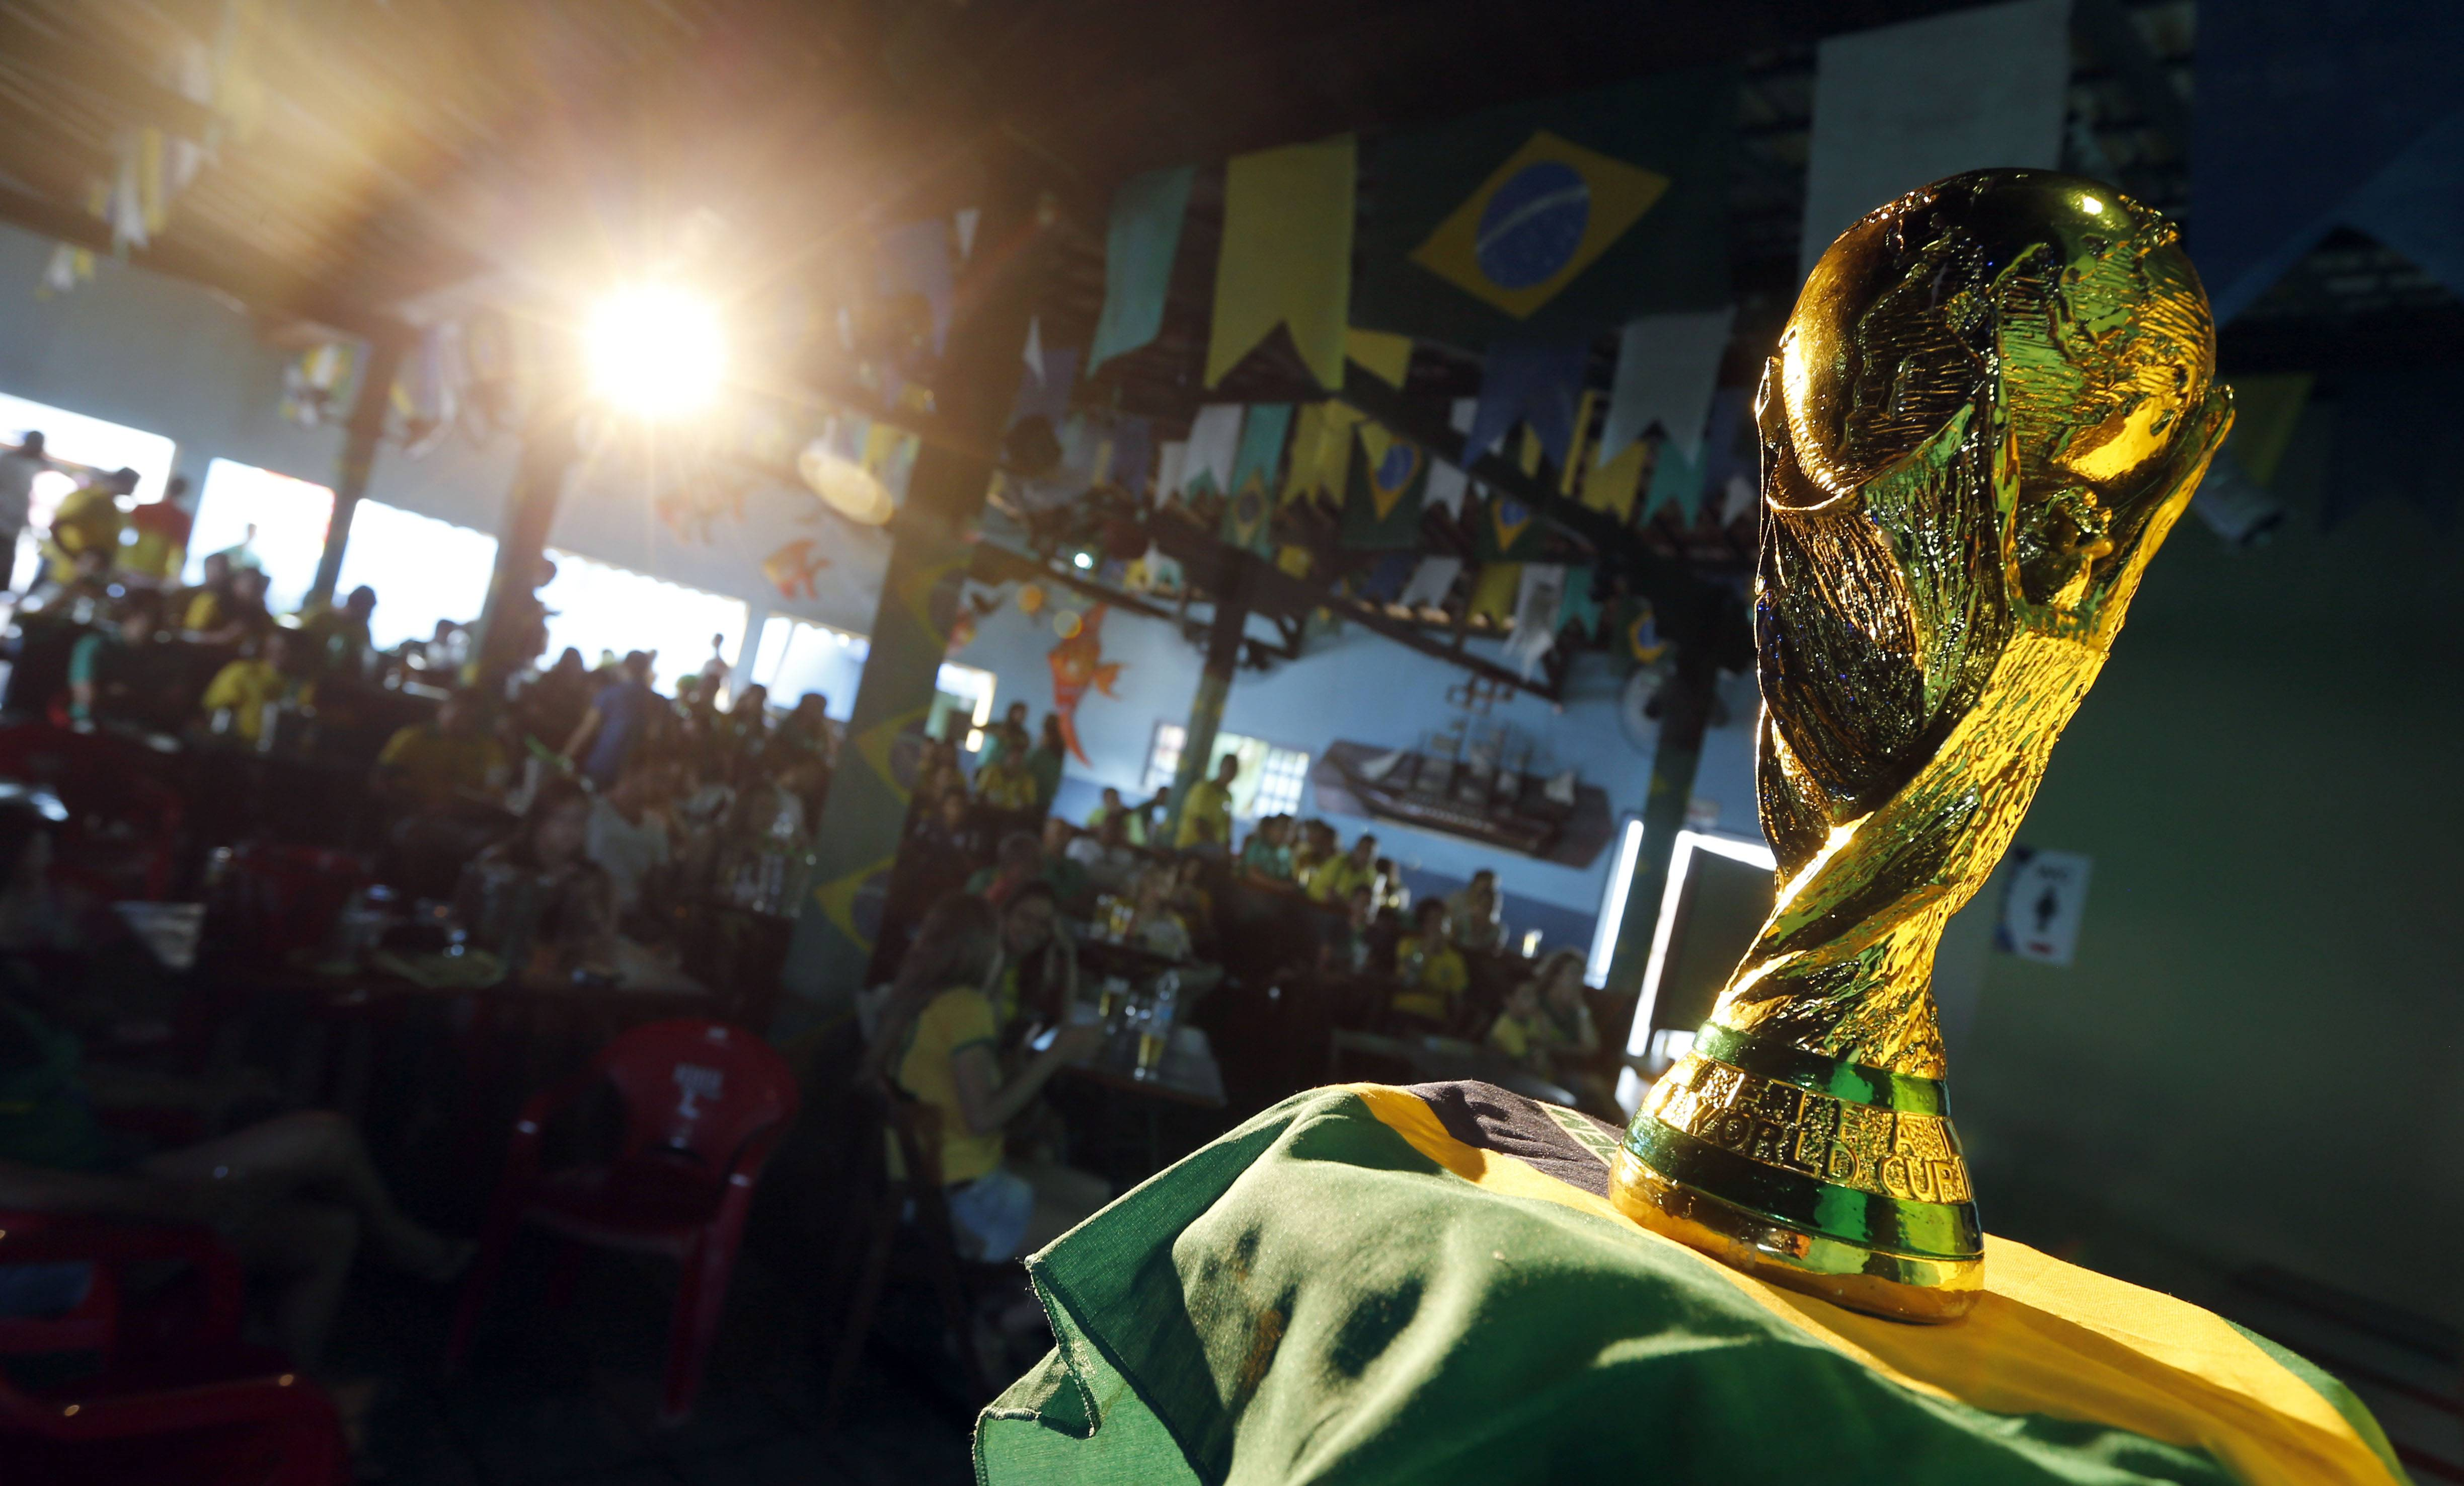 Brazilian residents watch the opening match of FIFA World Cup between Brazil and Croatia behind a replica of the trophy in Porto Seguro, Brazil.